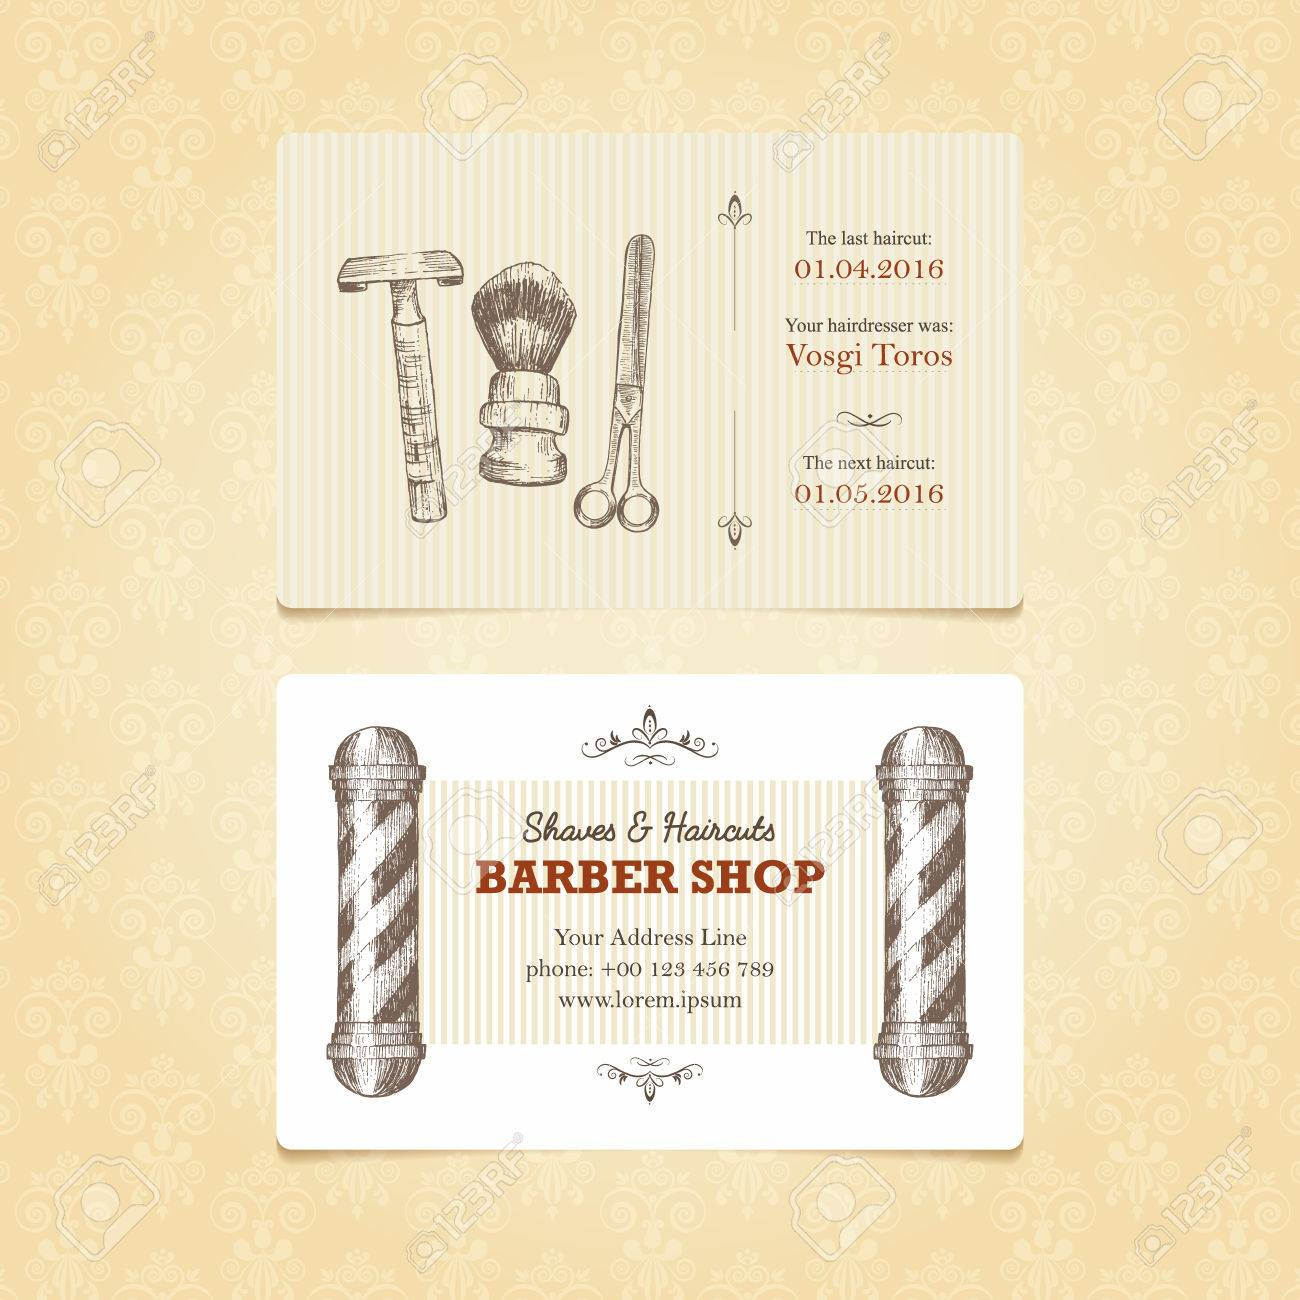 Business card in retro style for a barber shop vintage templates business card in retro style for a barber shop vintage templates with a place for reheart Choice Image